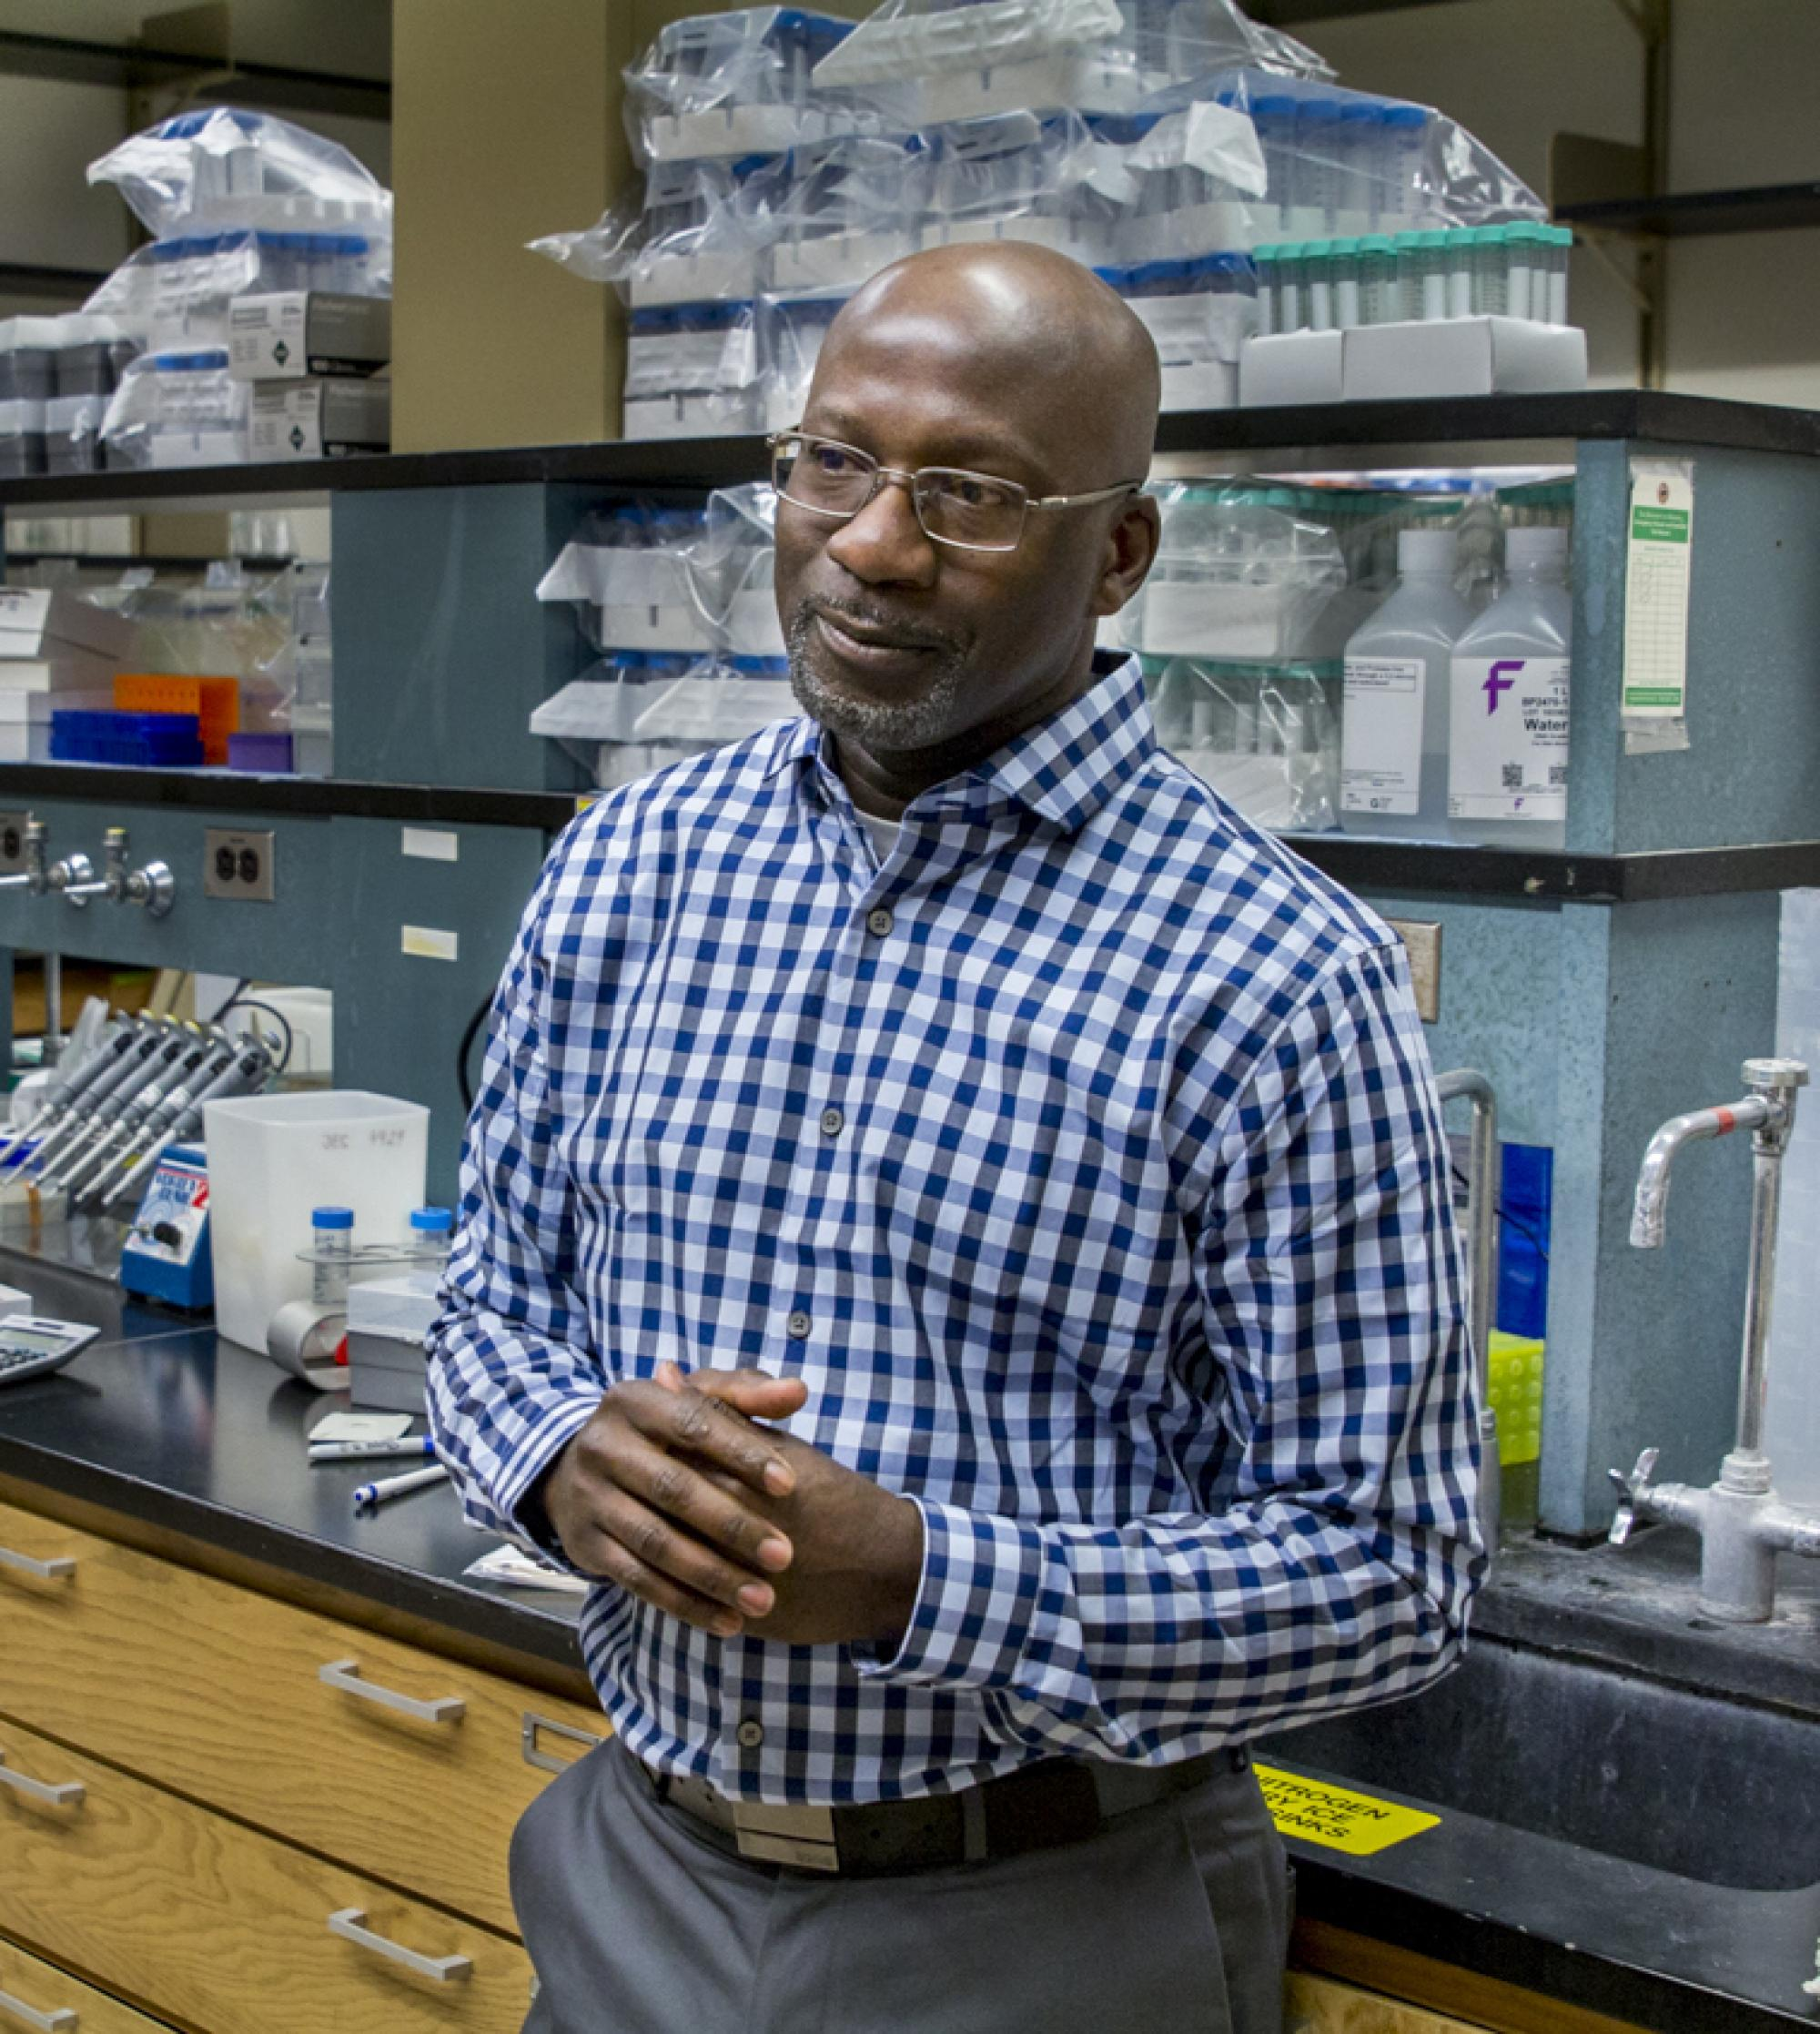 Rick Kittles joined the UA in July 2014, bringing with him years of expertise in a fascinating field of study.